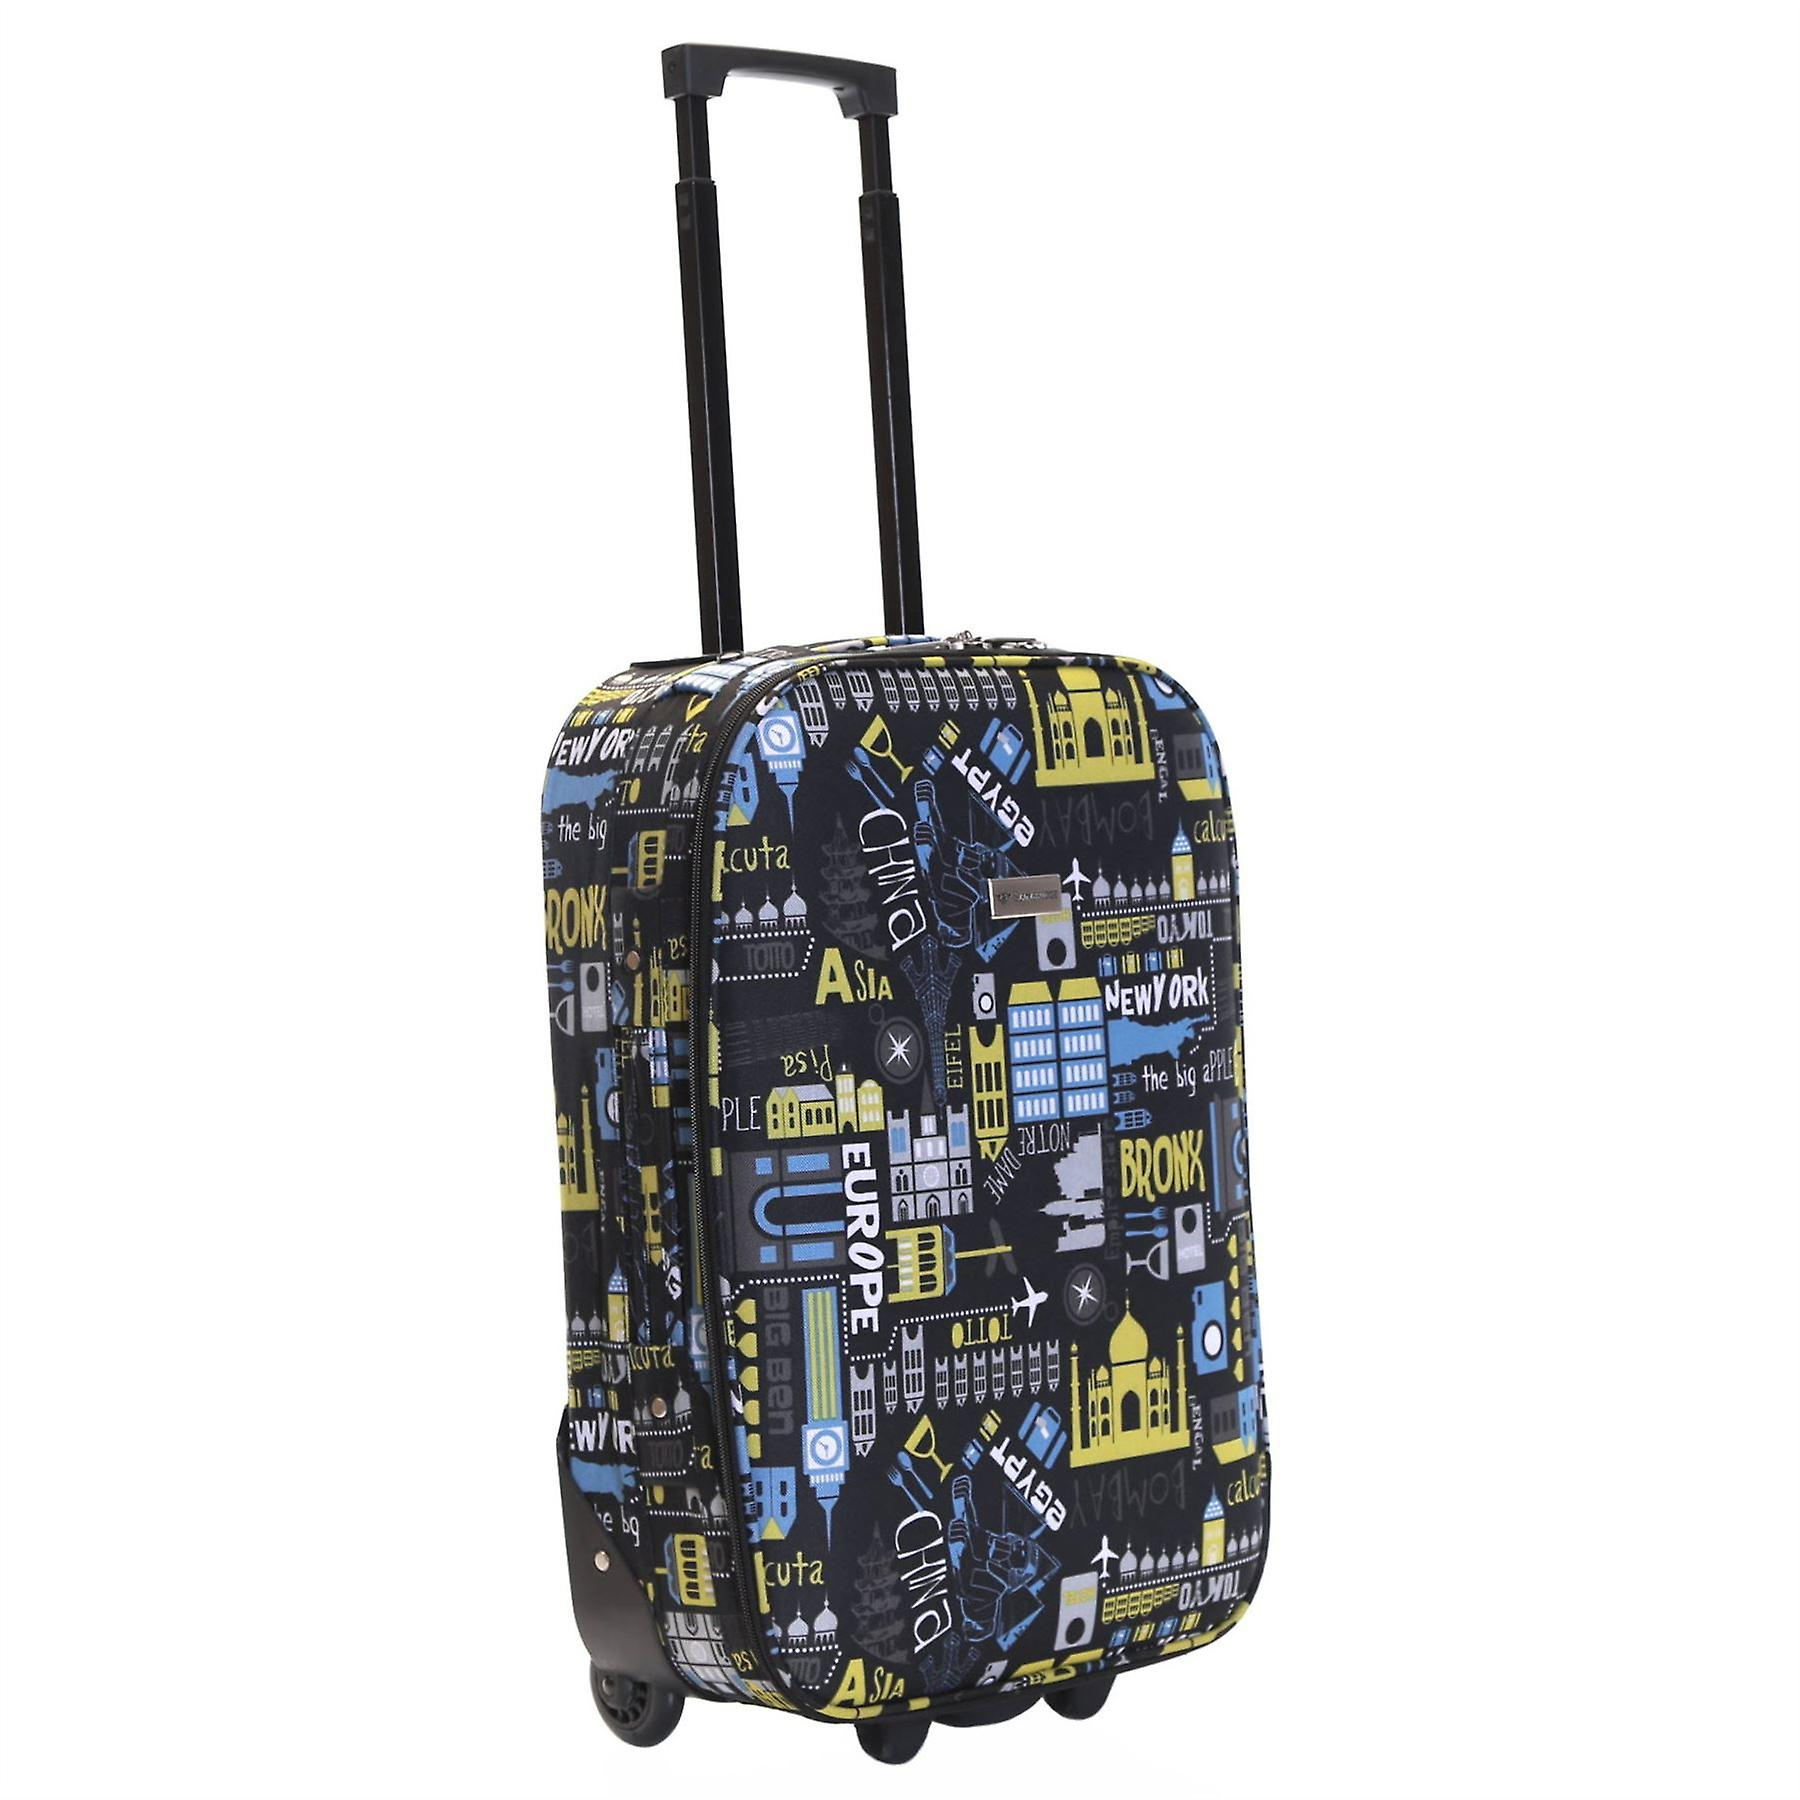 Slimbridge Algarve 55 cm Super Lightweight Suitcase, Black/Blue